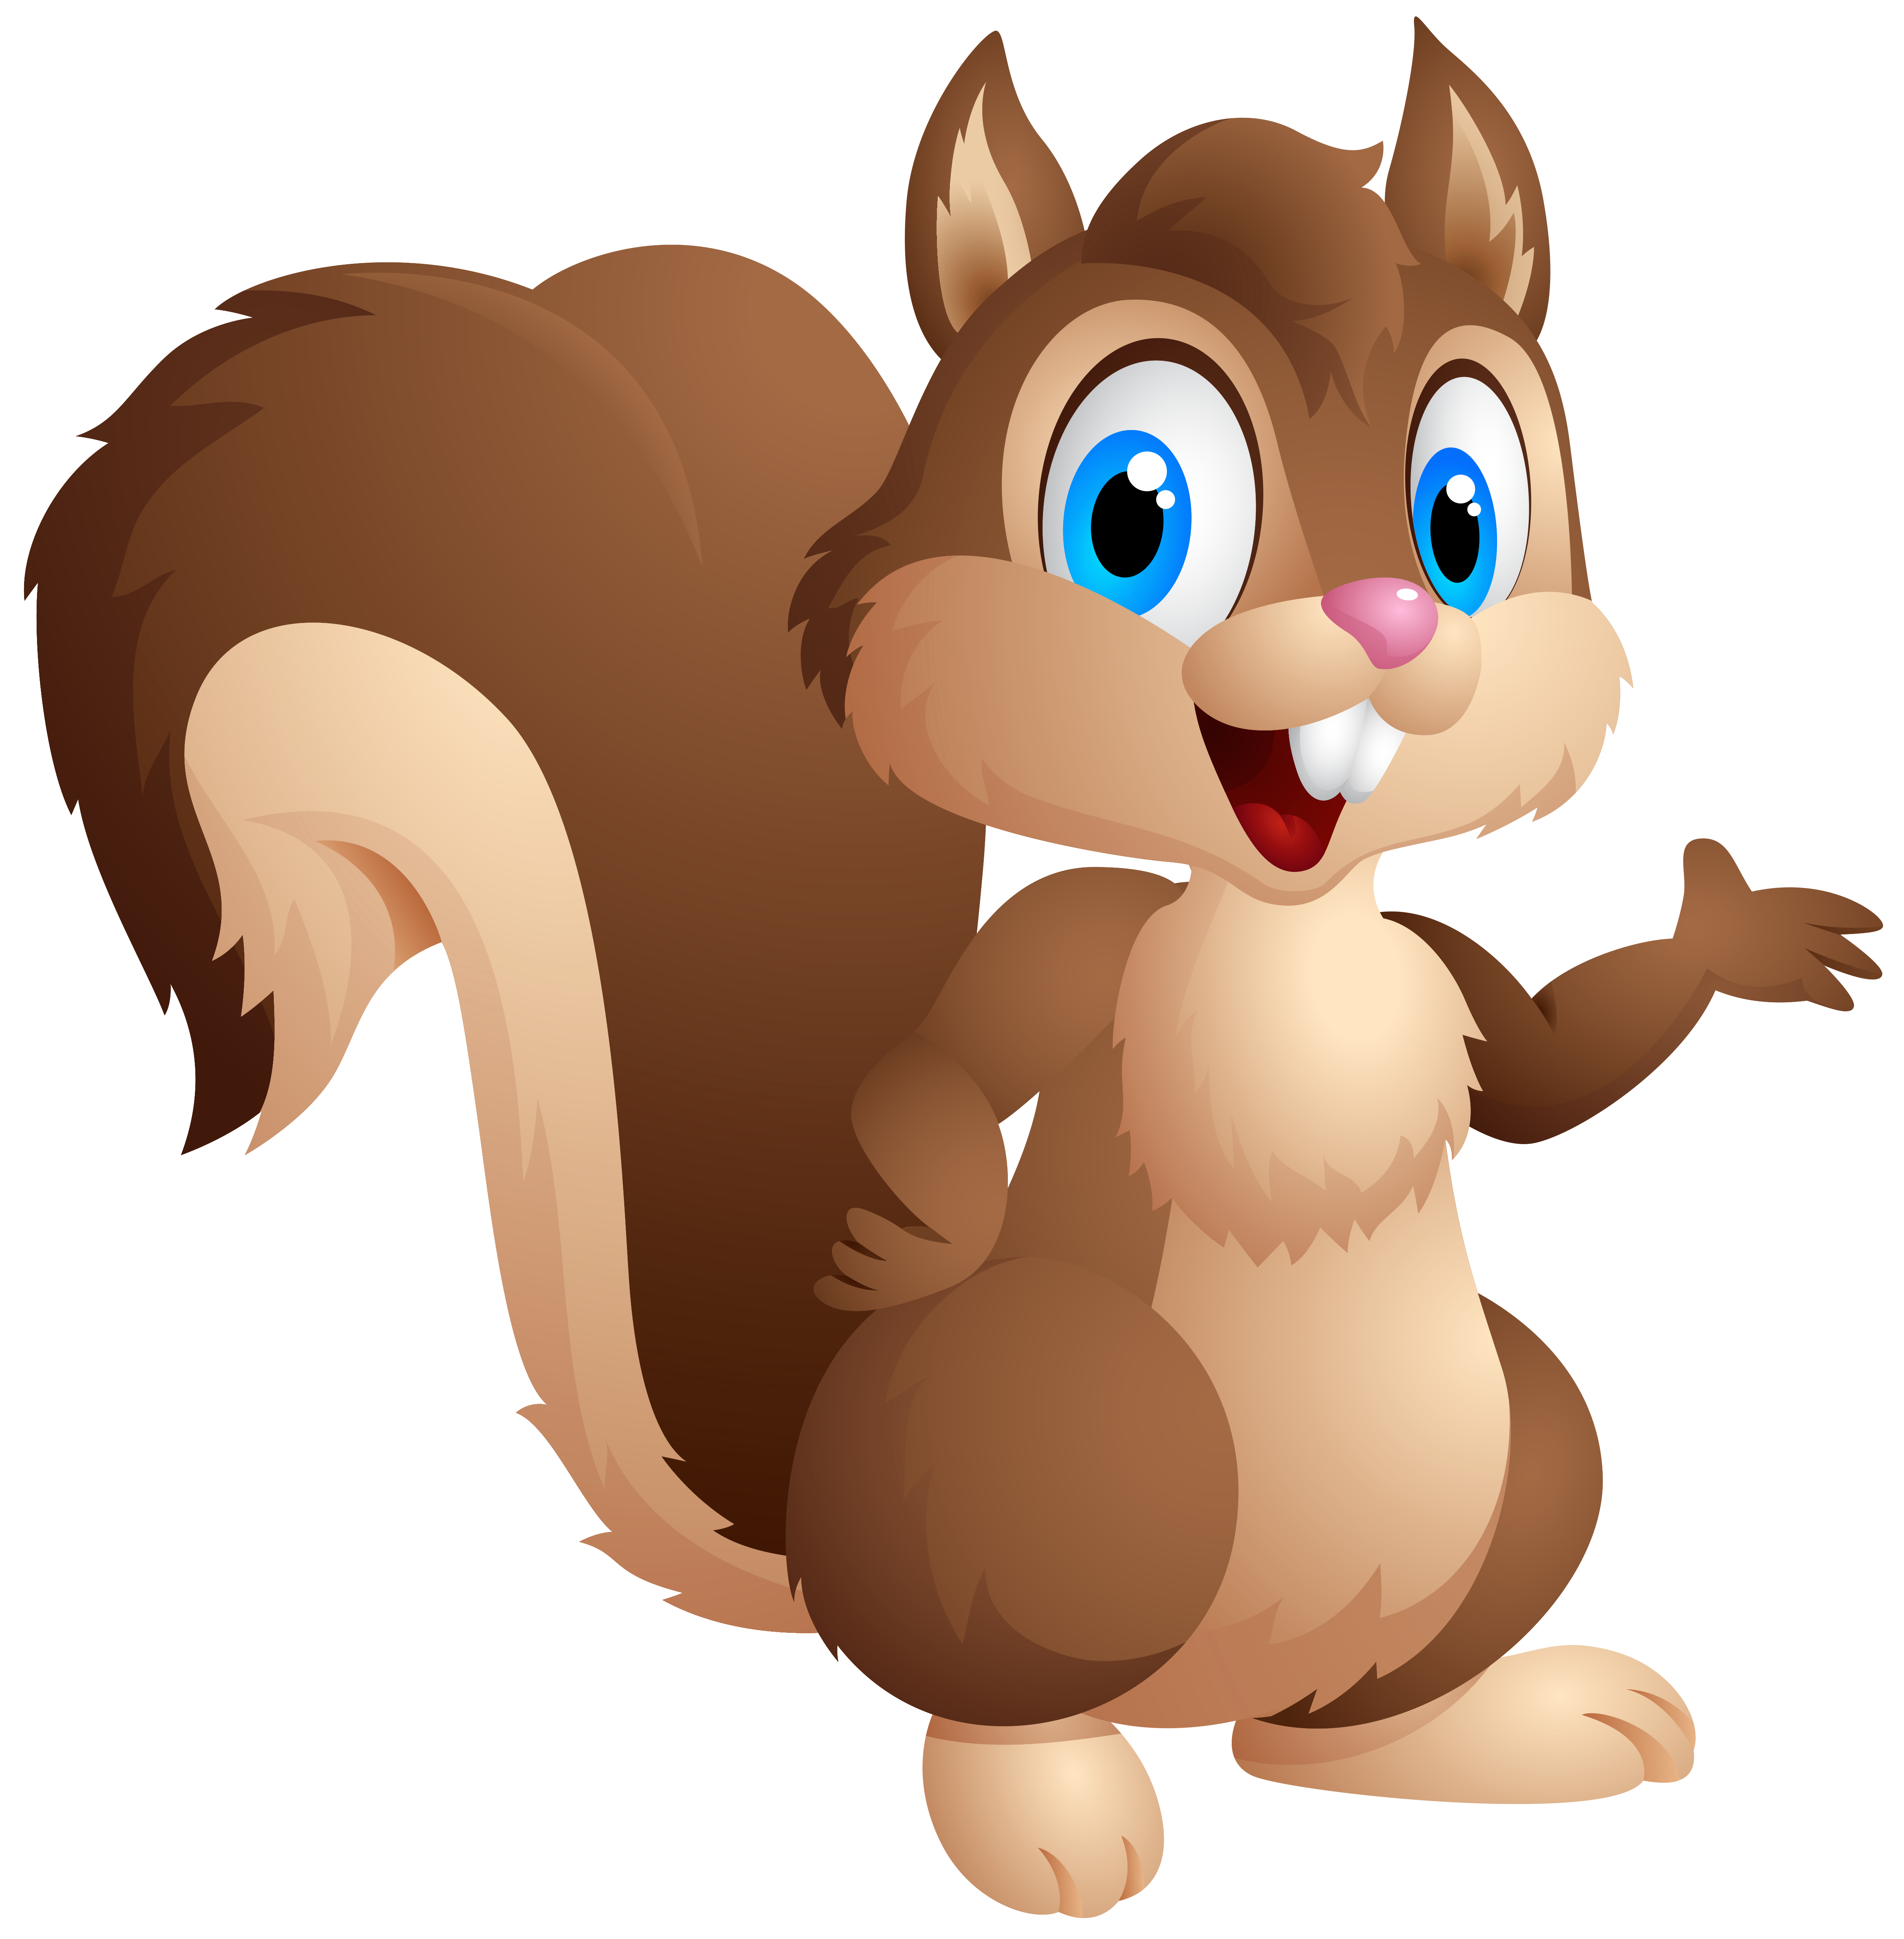 Clipart free jpg black and white download Squirrel clipart free clipart | Chipmunk | Squirrel clipart, Cute ... jpg black and white download